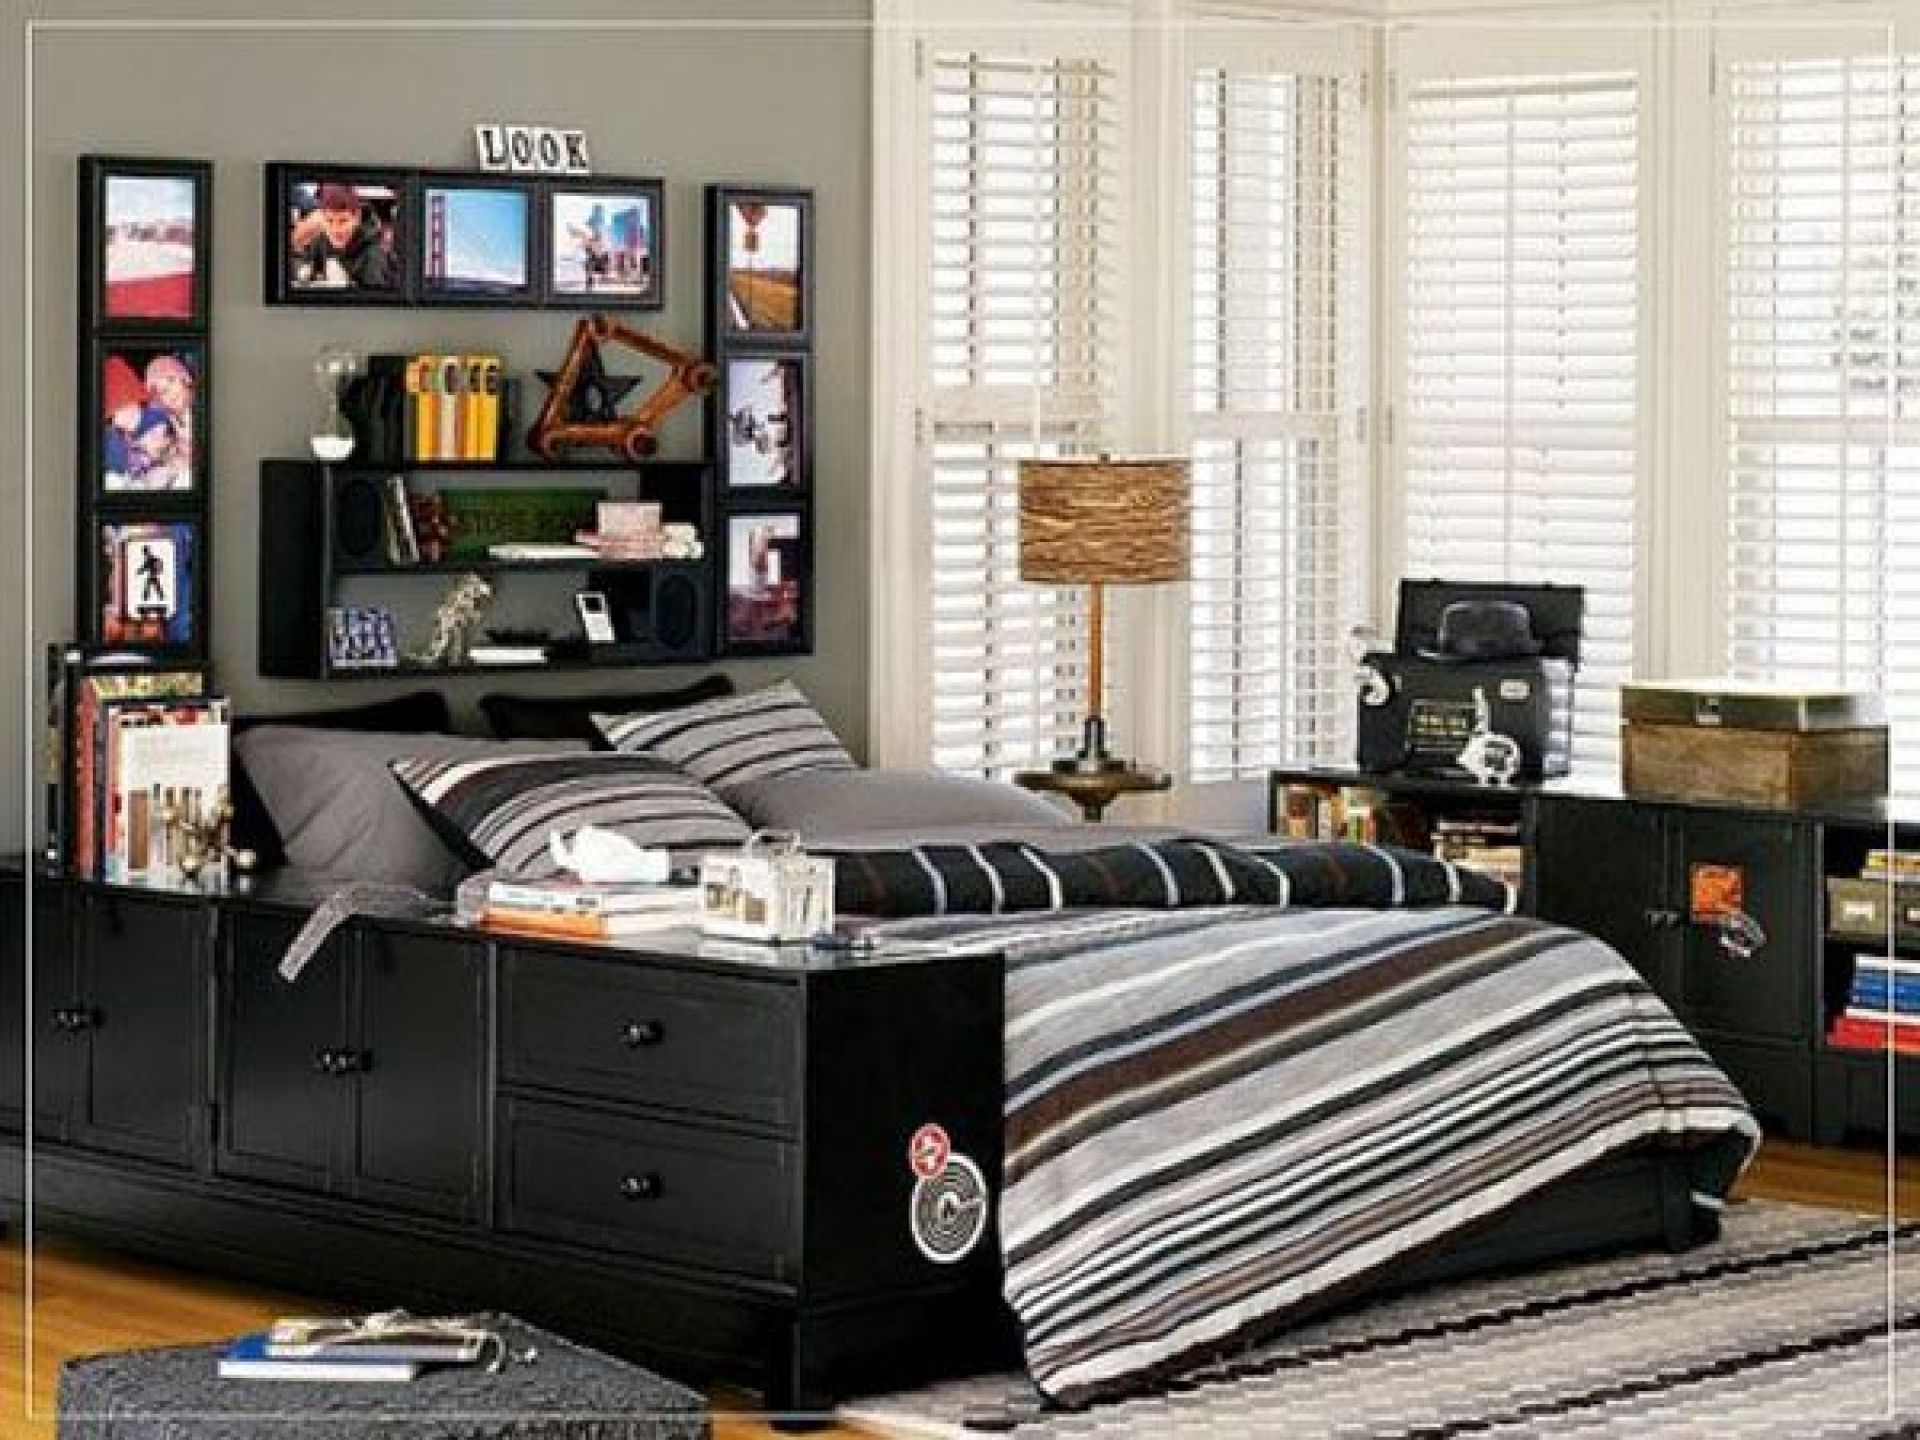 teens room black white bed cover pillow carpet fur rug cabinet shelves frame picture transparent curtain desk lamp boys bedroom ideas mattress teen room